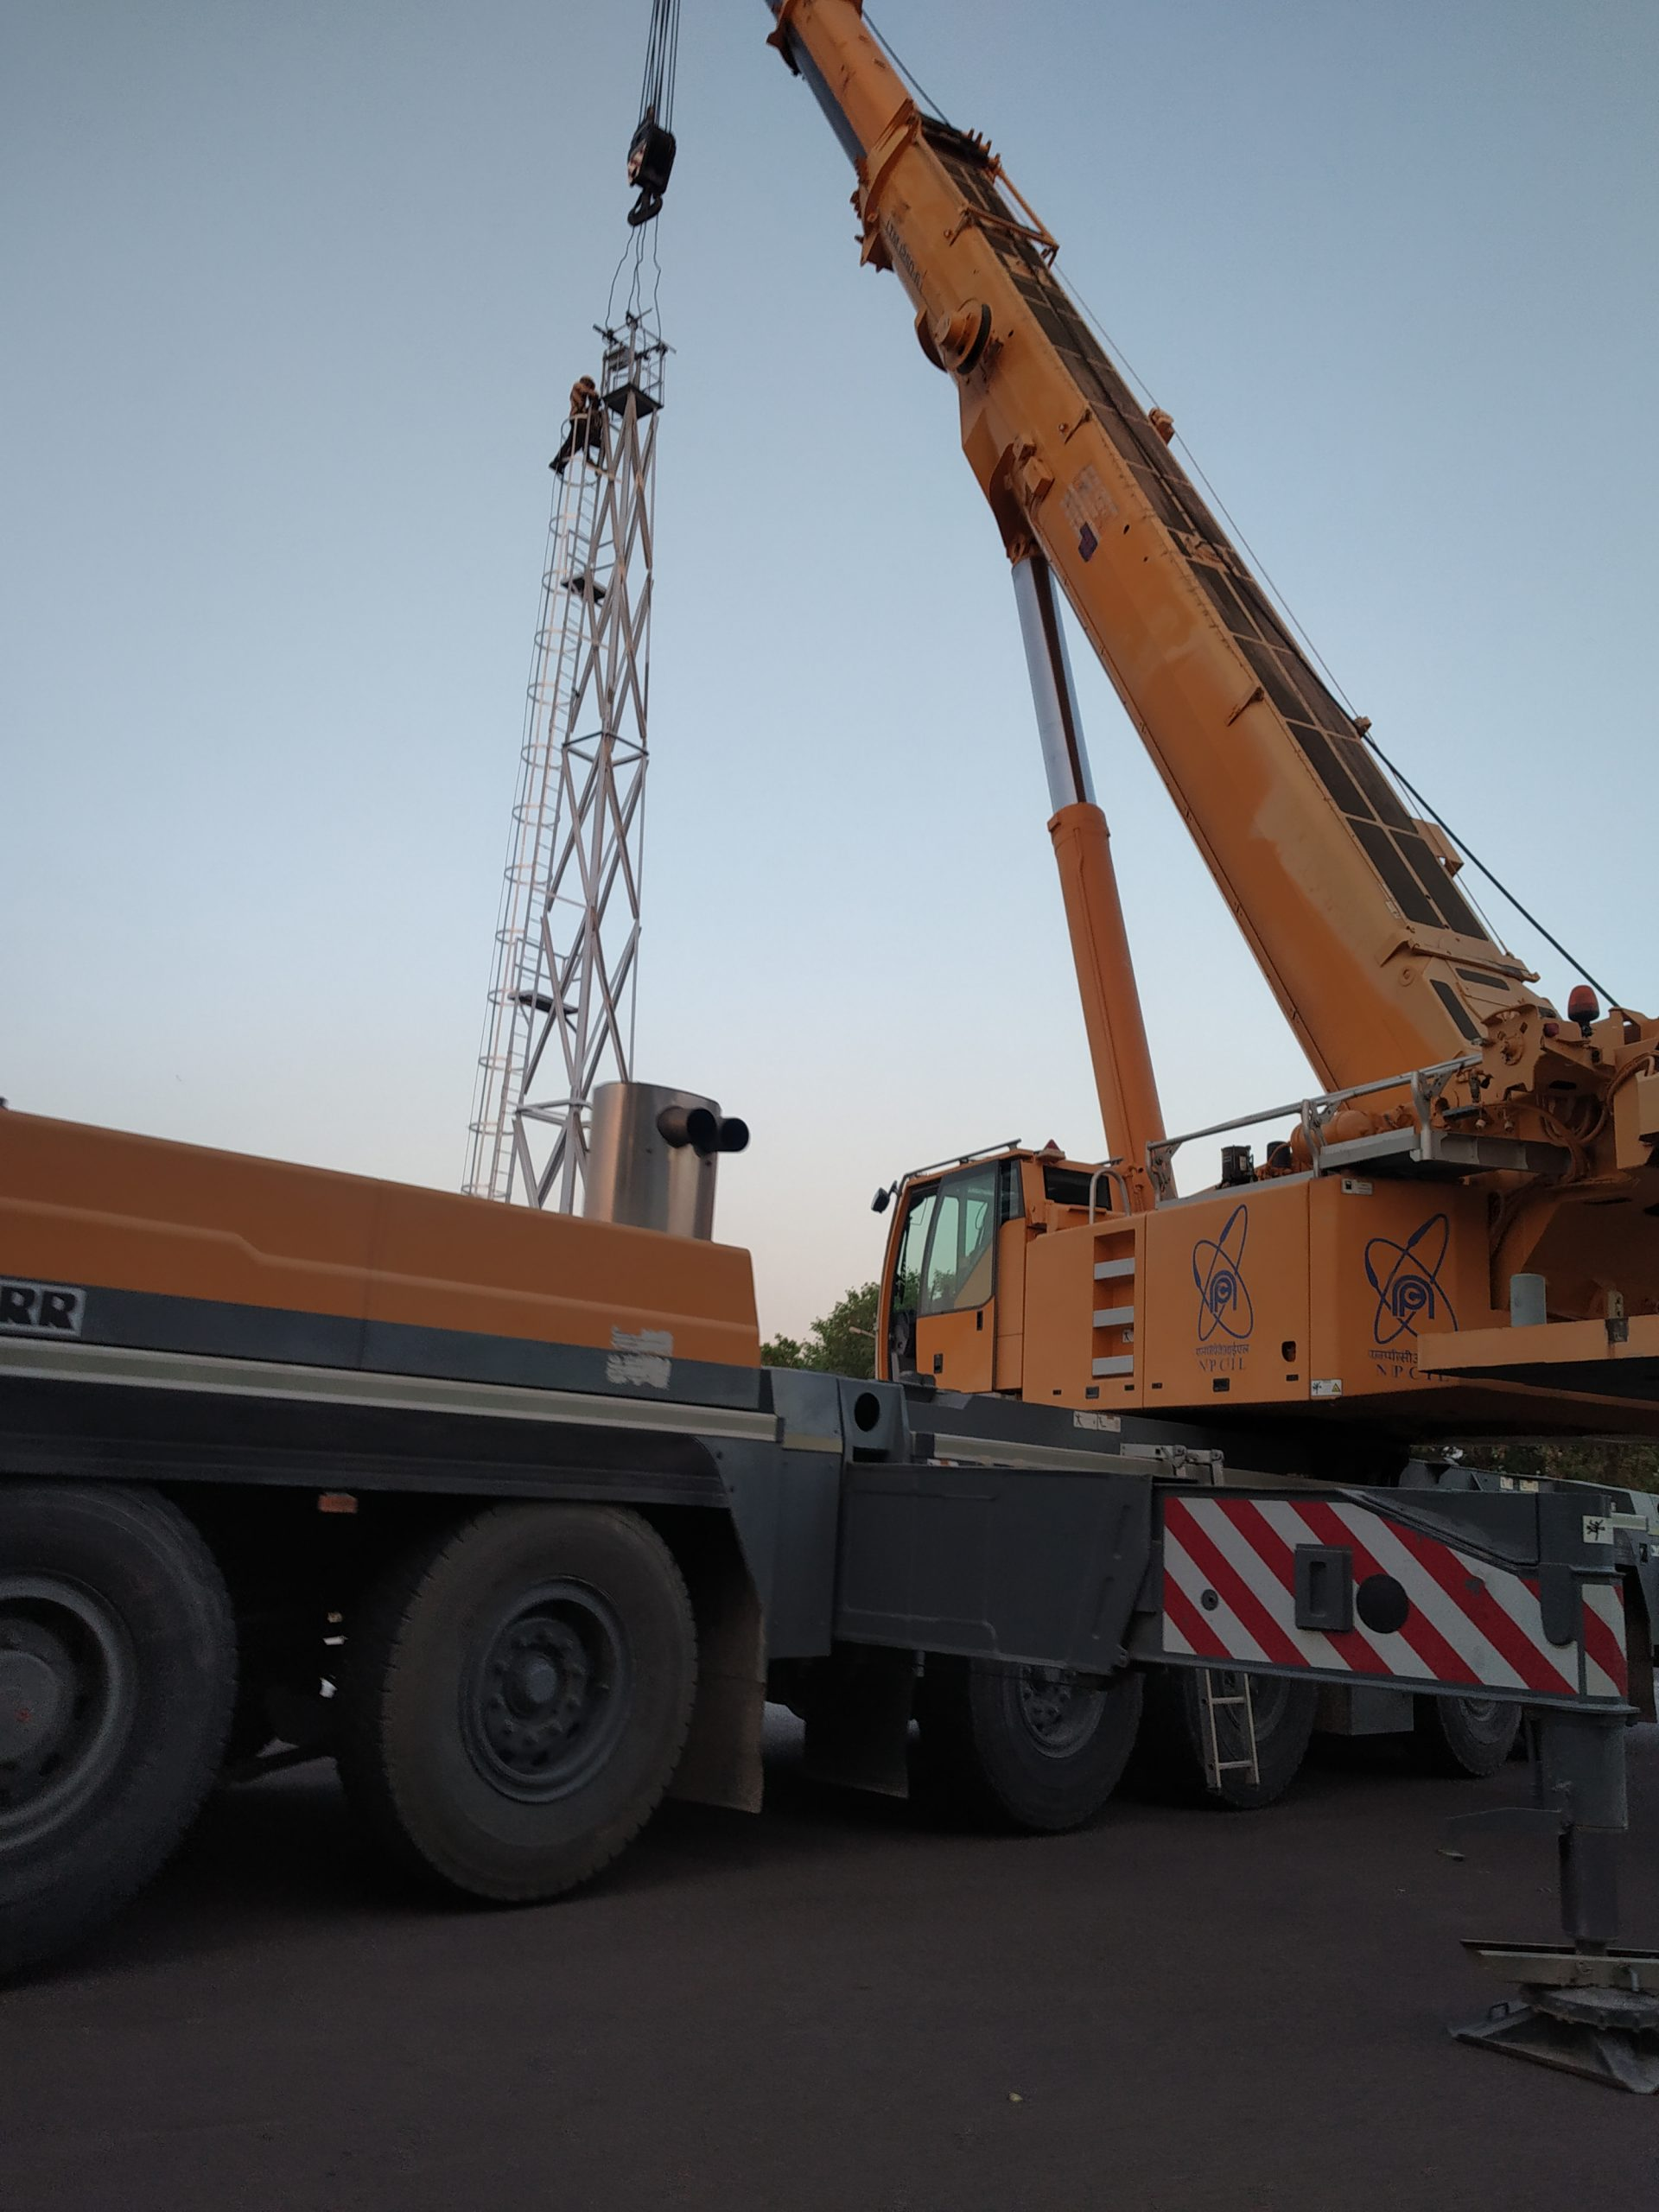 Tower repair with the help of a crane